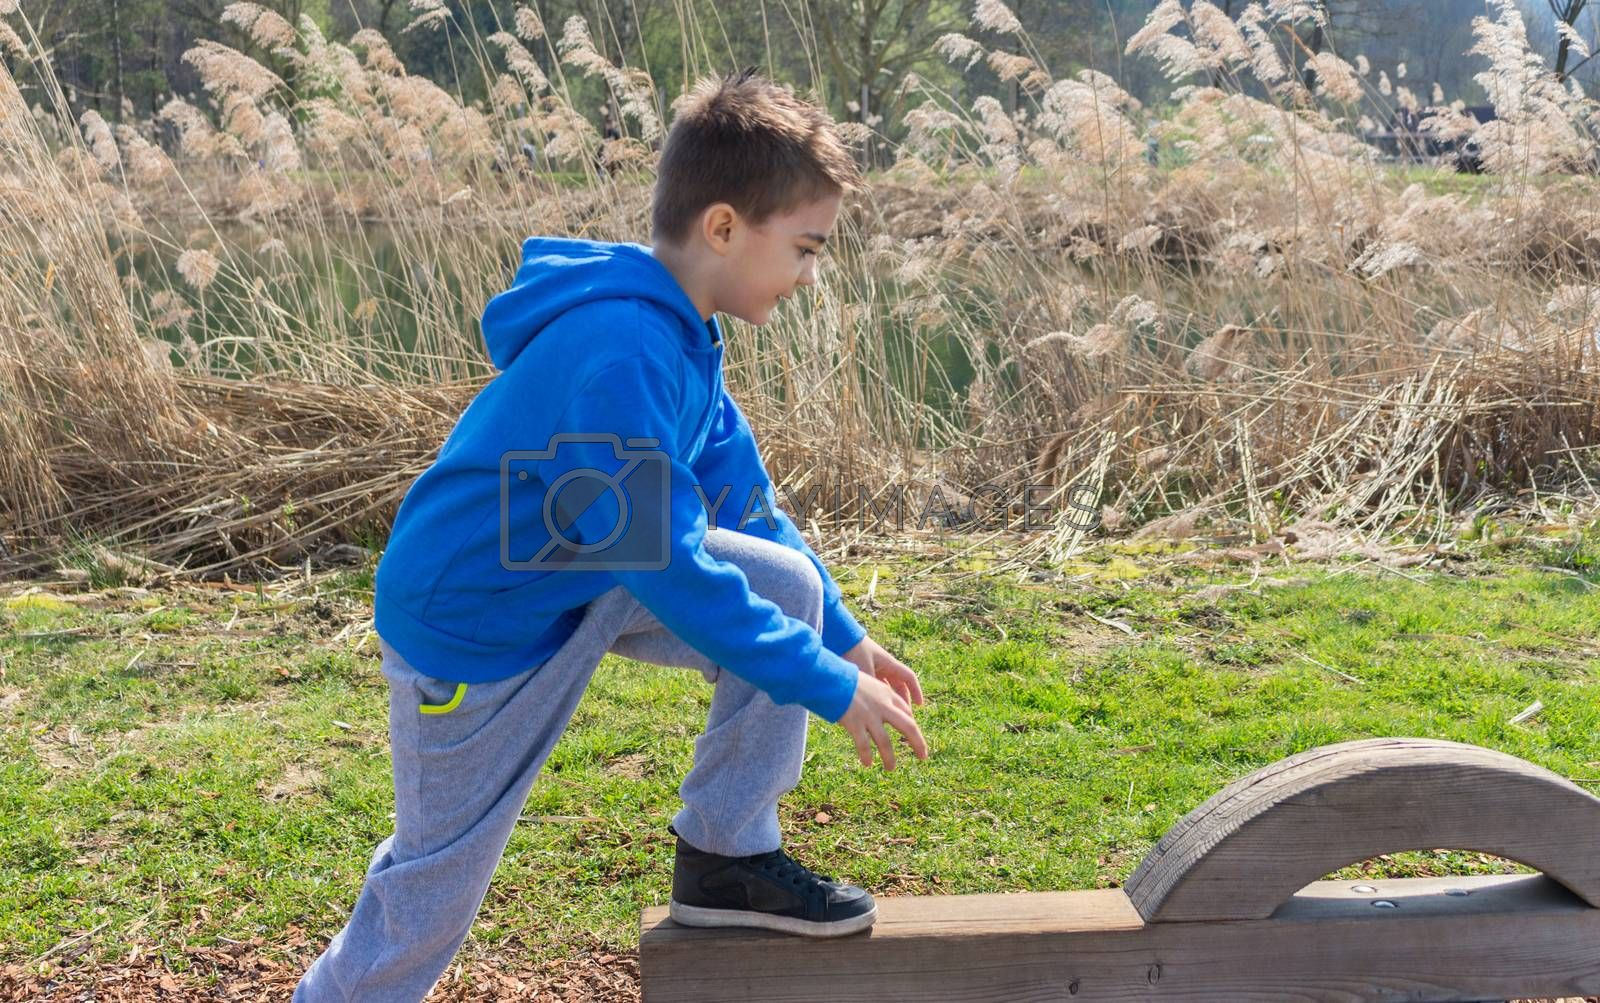 Young boy climbing on playground